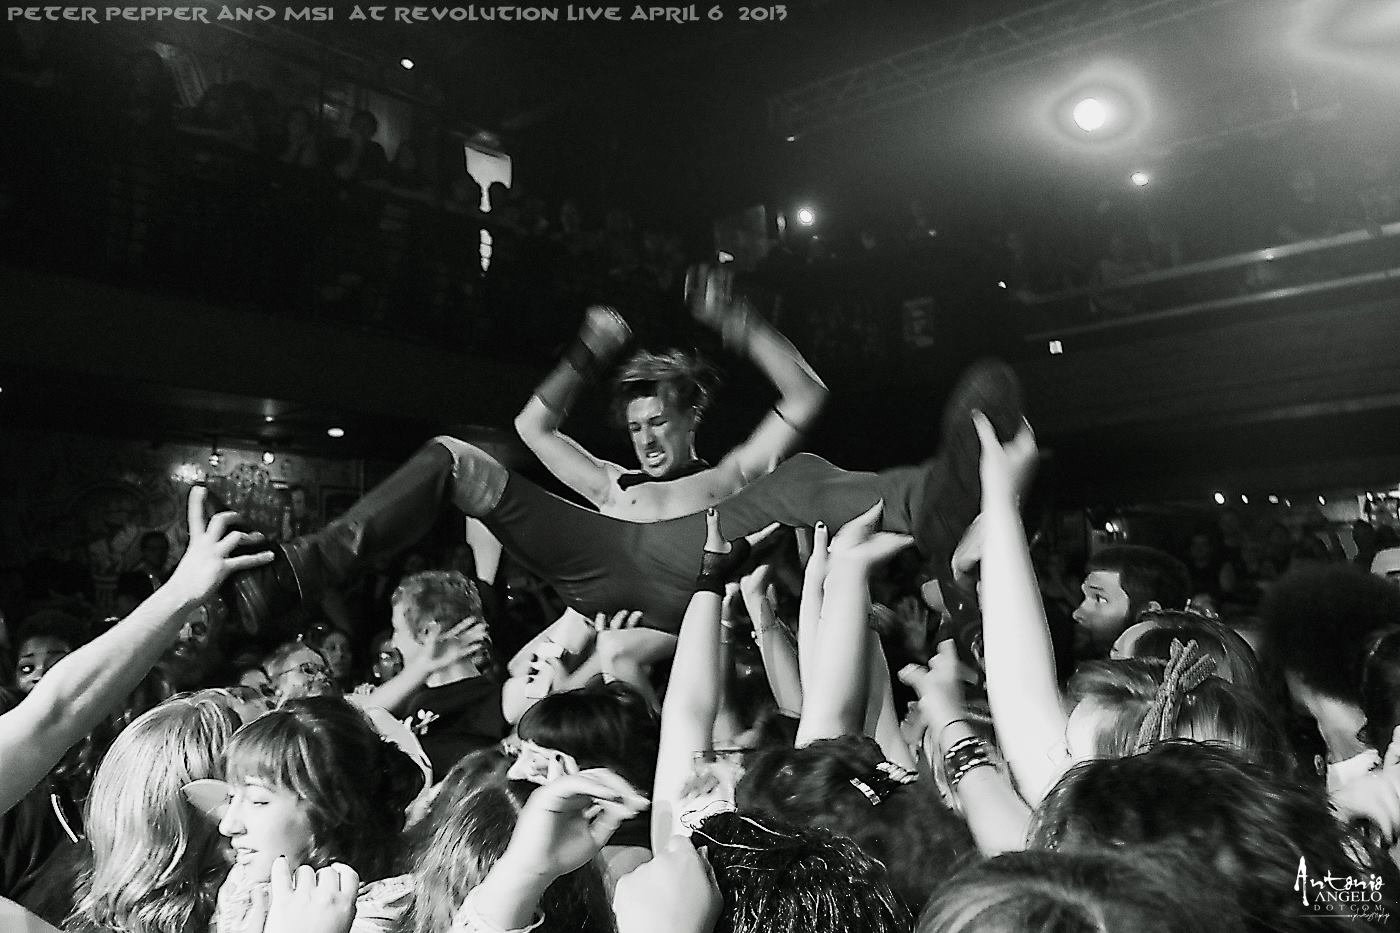 Peter Pepper crowd surfing